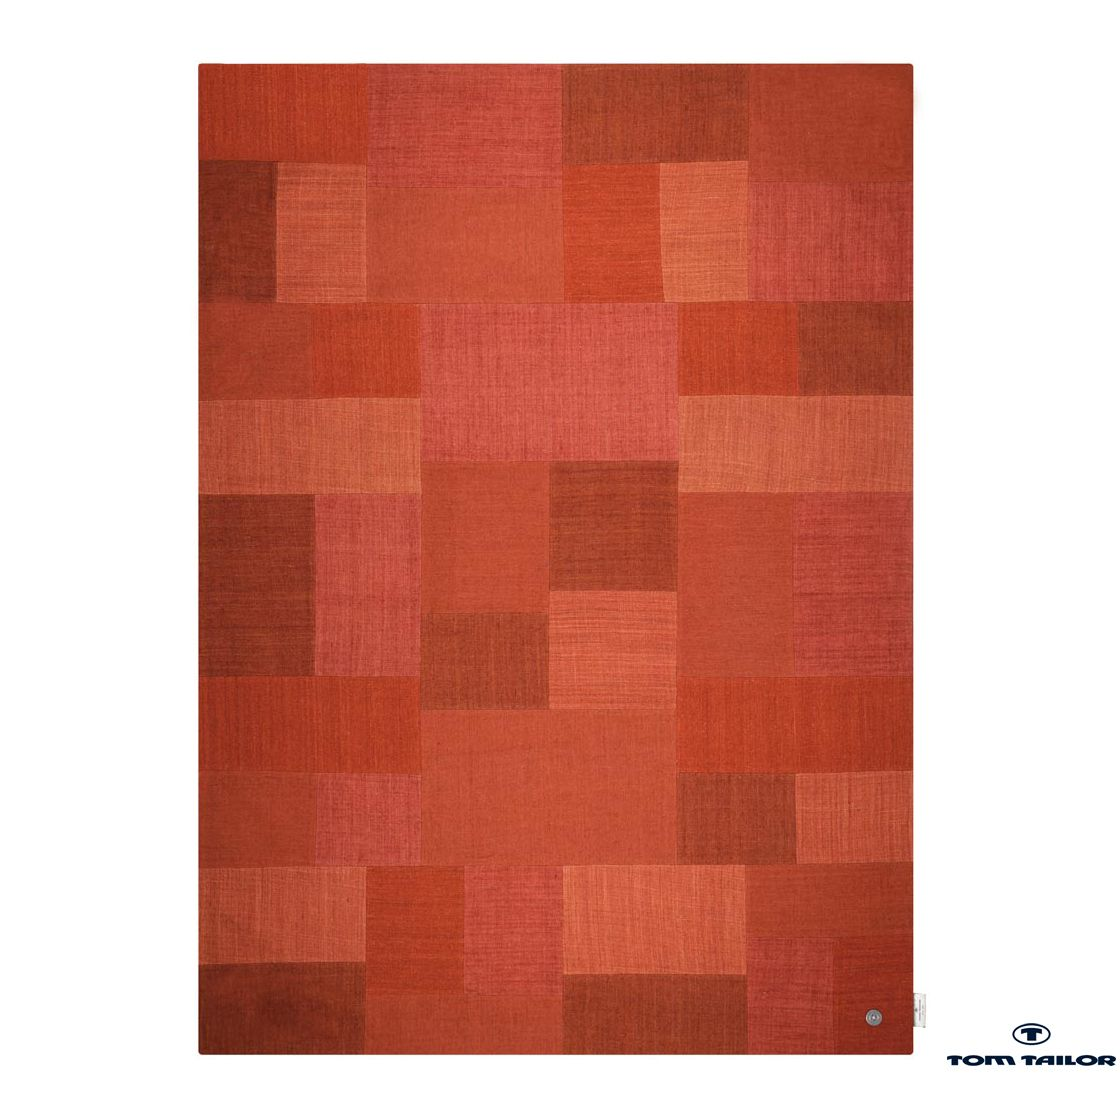 Teppich Patch Denim – Rot – 50x80cm, Tom Tailor günstig bestellen